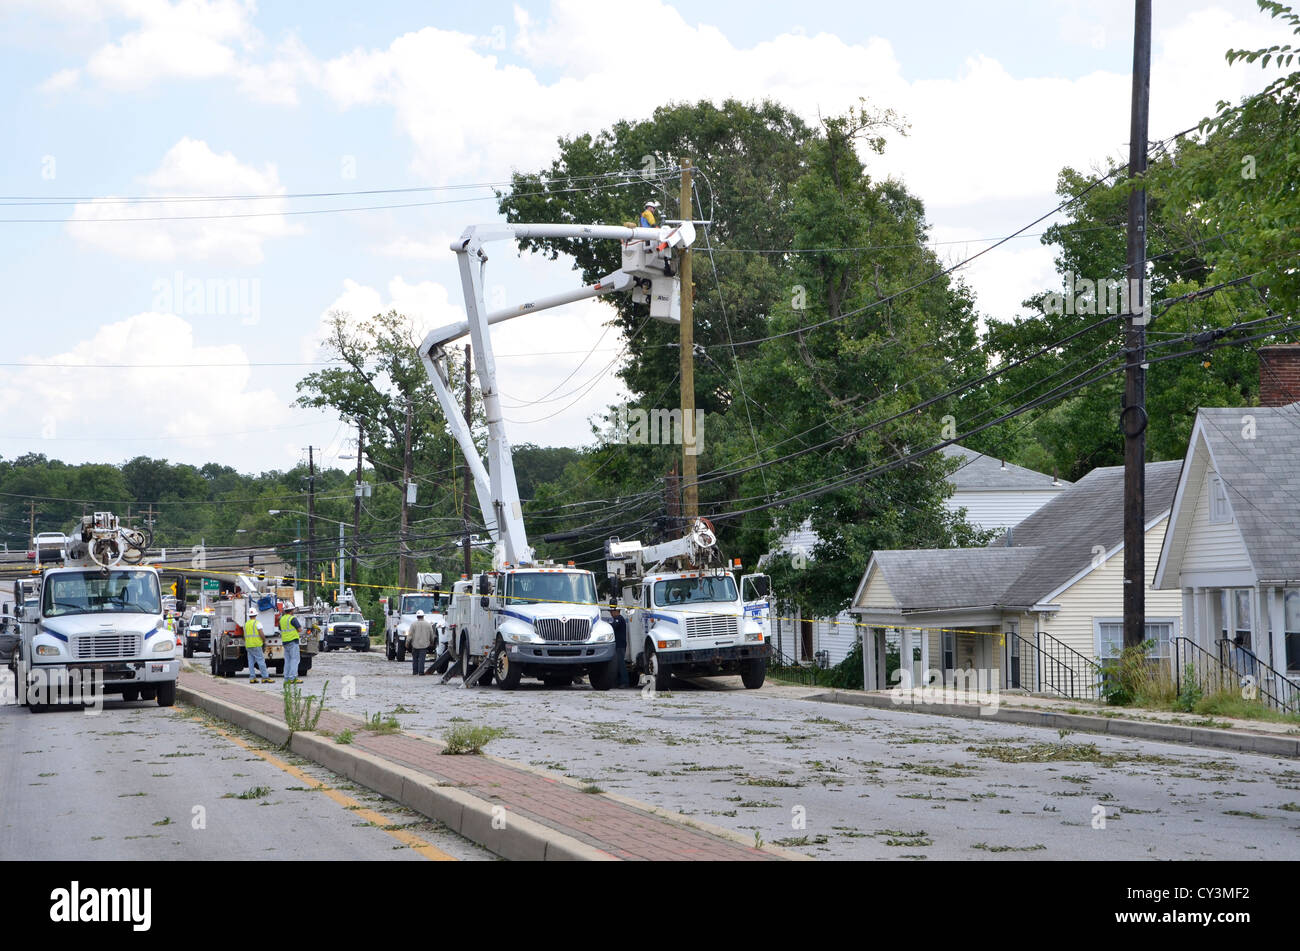 Power Companies work on electrical poles in Bladensburg after a severe storm - Stock Image